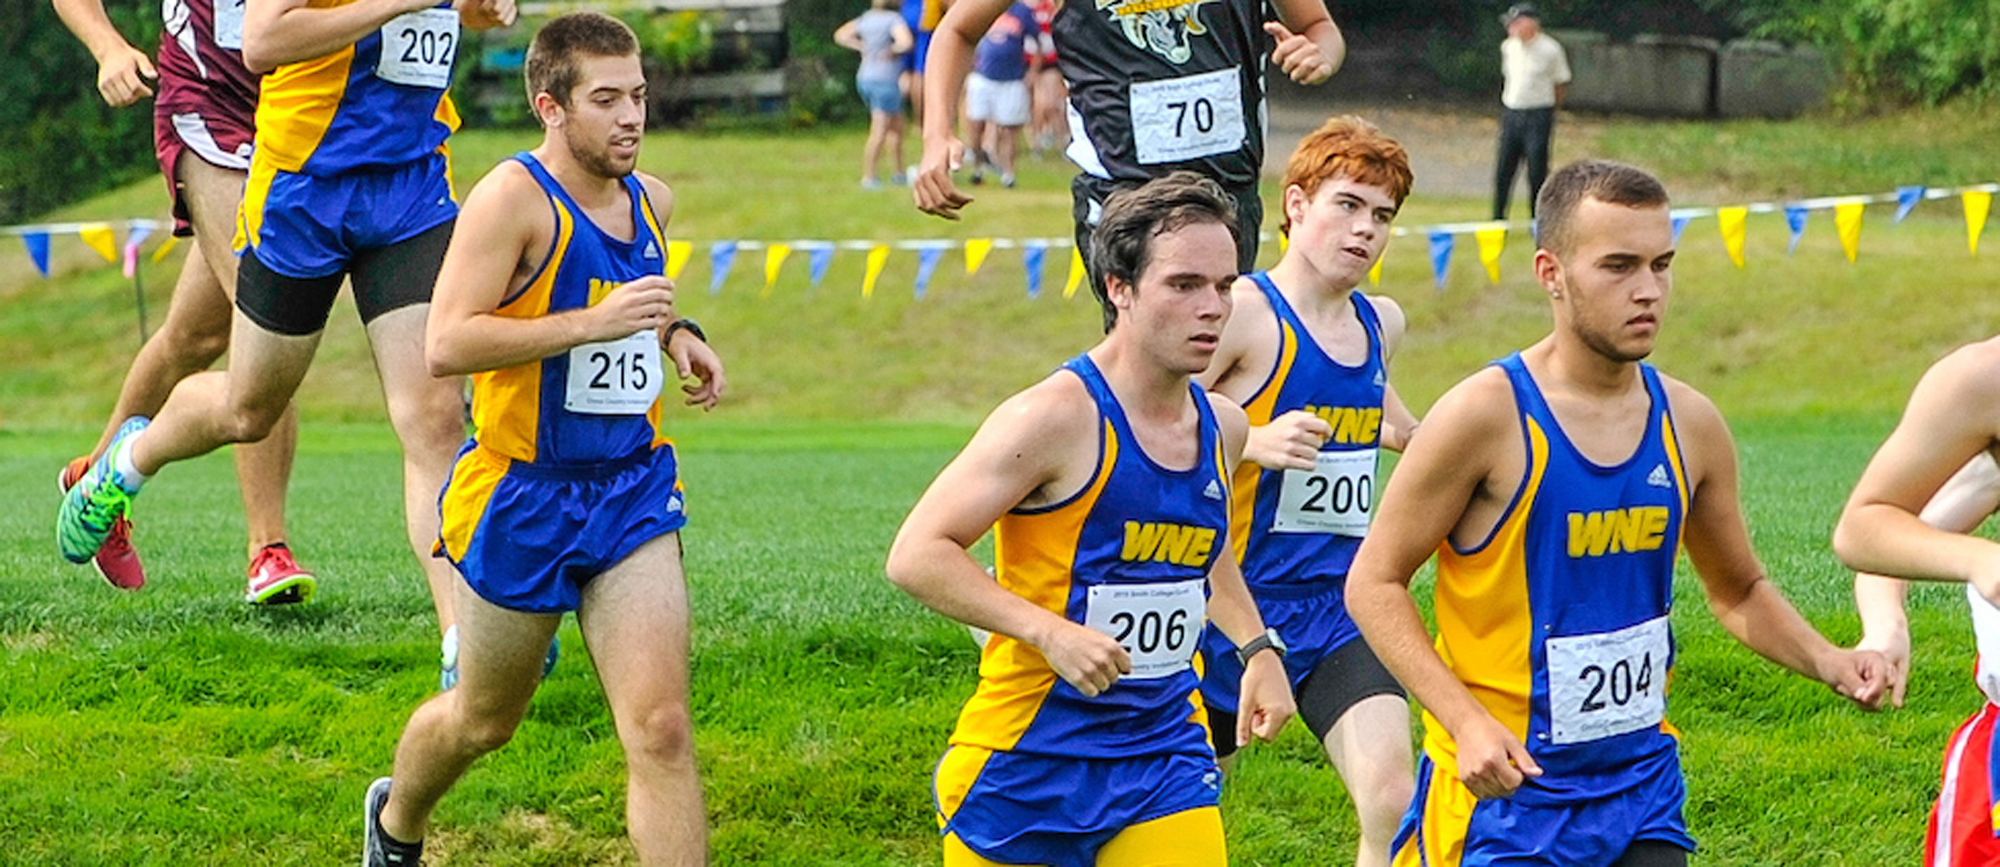 Western New England Places Four in Top-10 En Route to 2nd Place Finish at Blazer Invitational